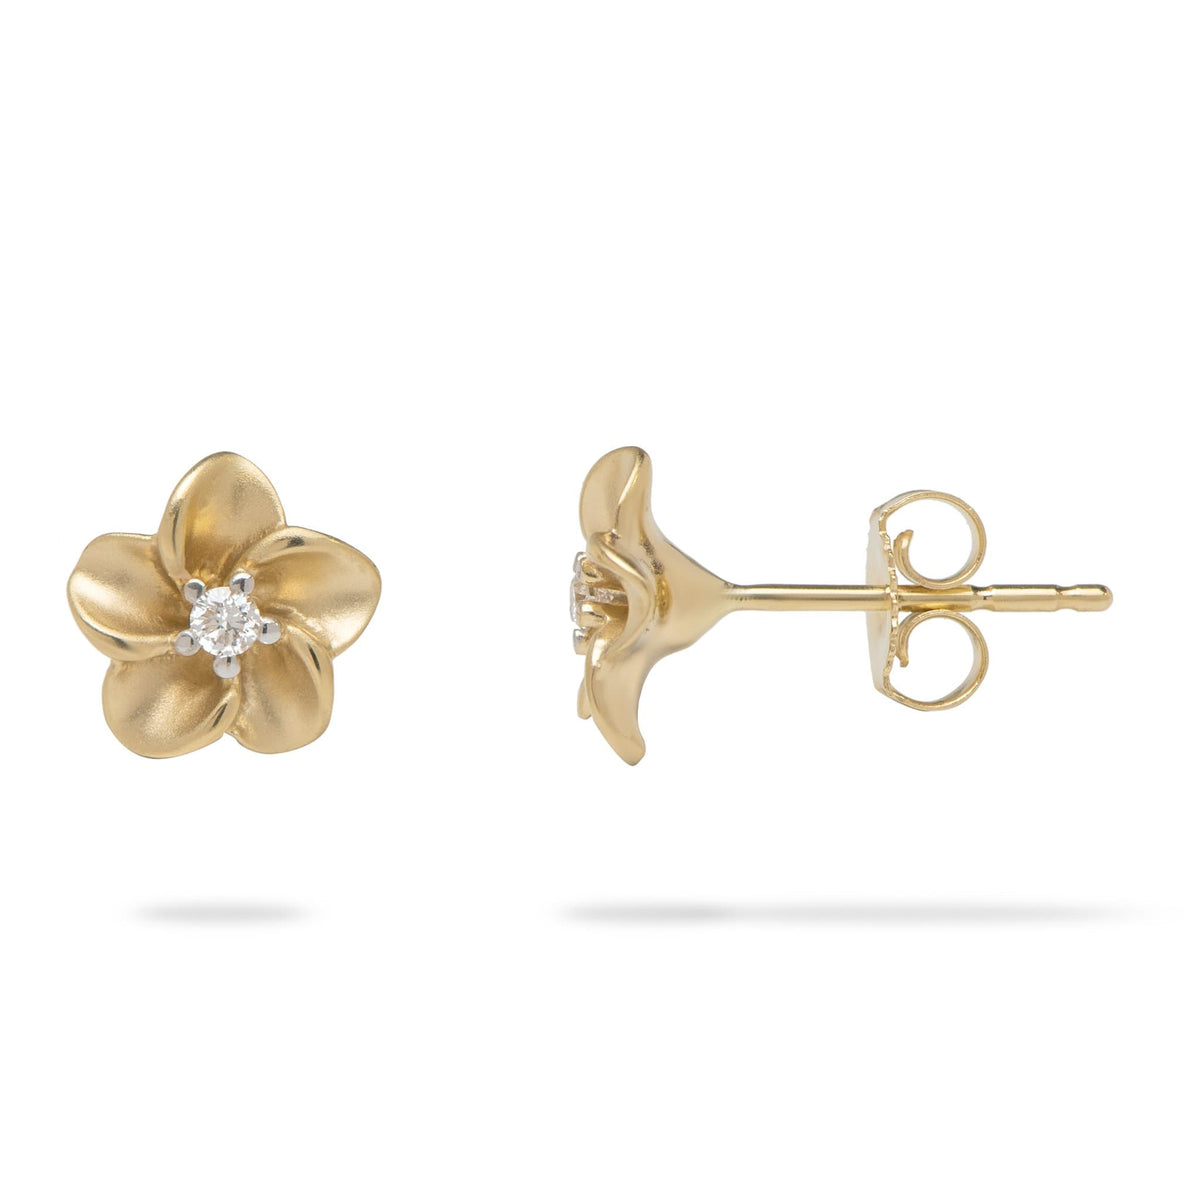 Plumeria Earrings with Diamonds in 14K Yellow Gold - Maui Divers Jewelry